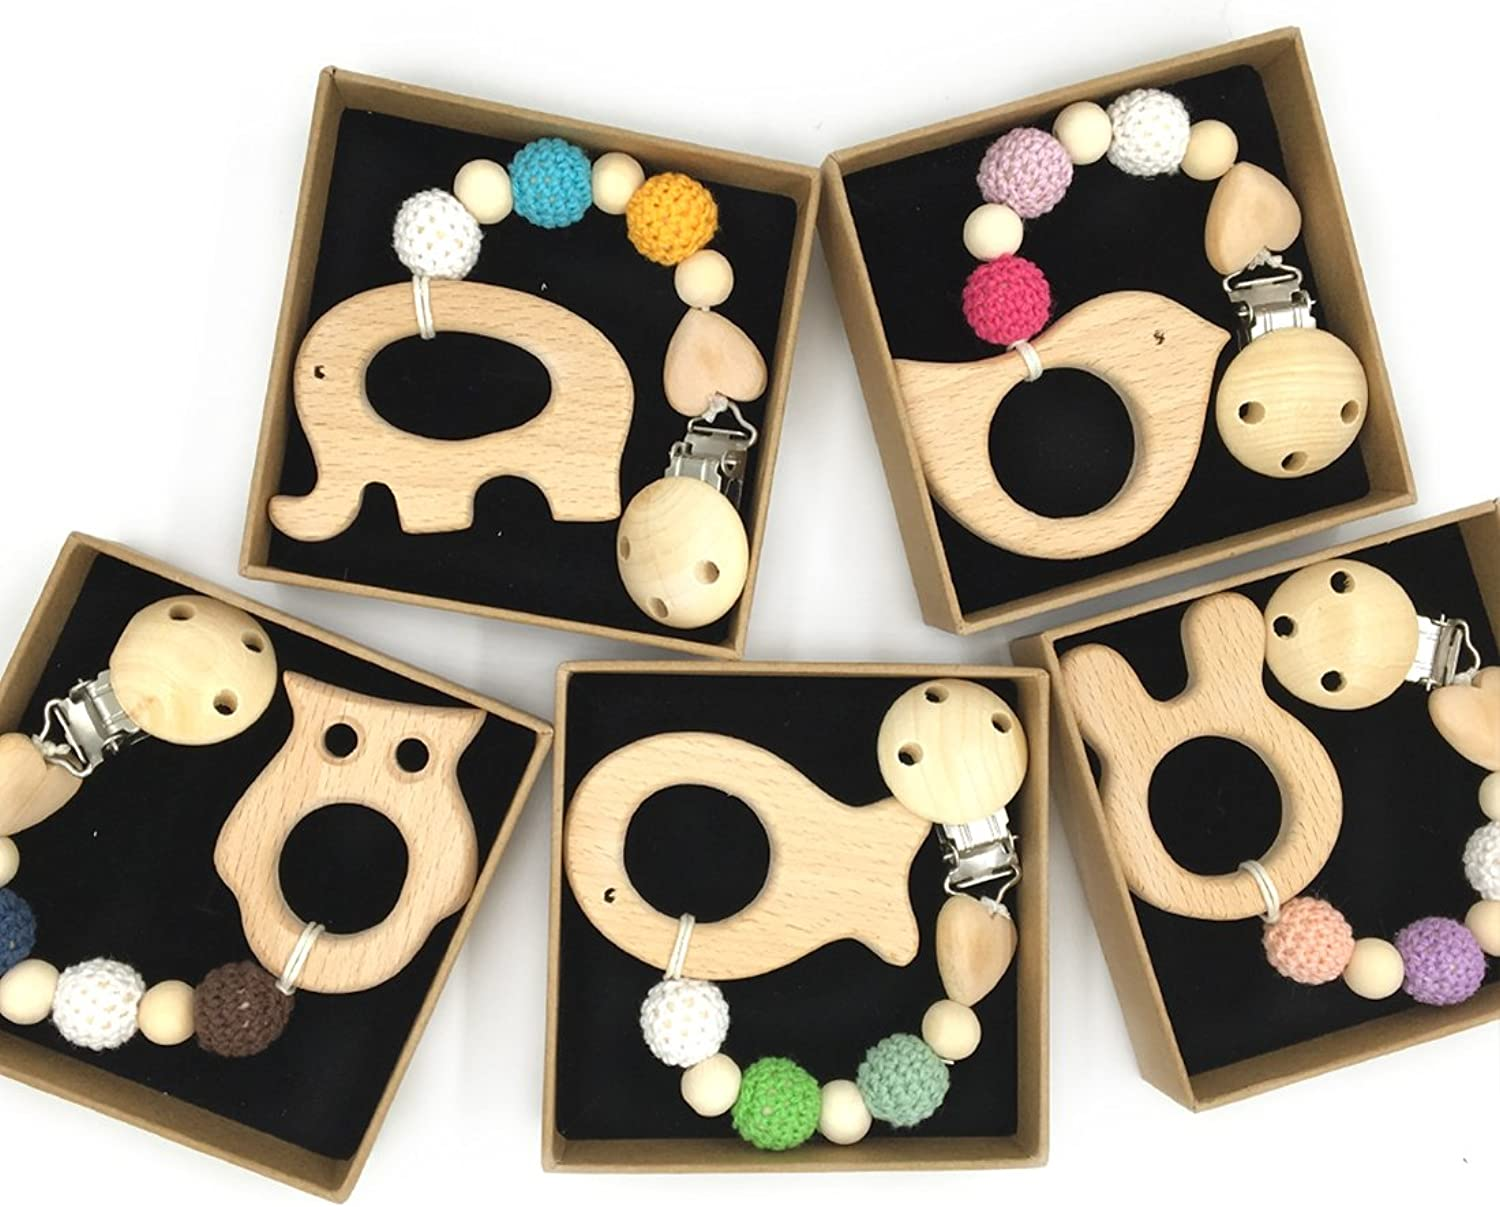 Amyster 5pcs Baby Wood Pacifier Clip Pendant Nature Wooden Teething Chewable Safe Holder Infant Gift Unisex Teething Clip Toys (color 52)